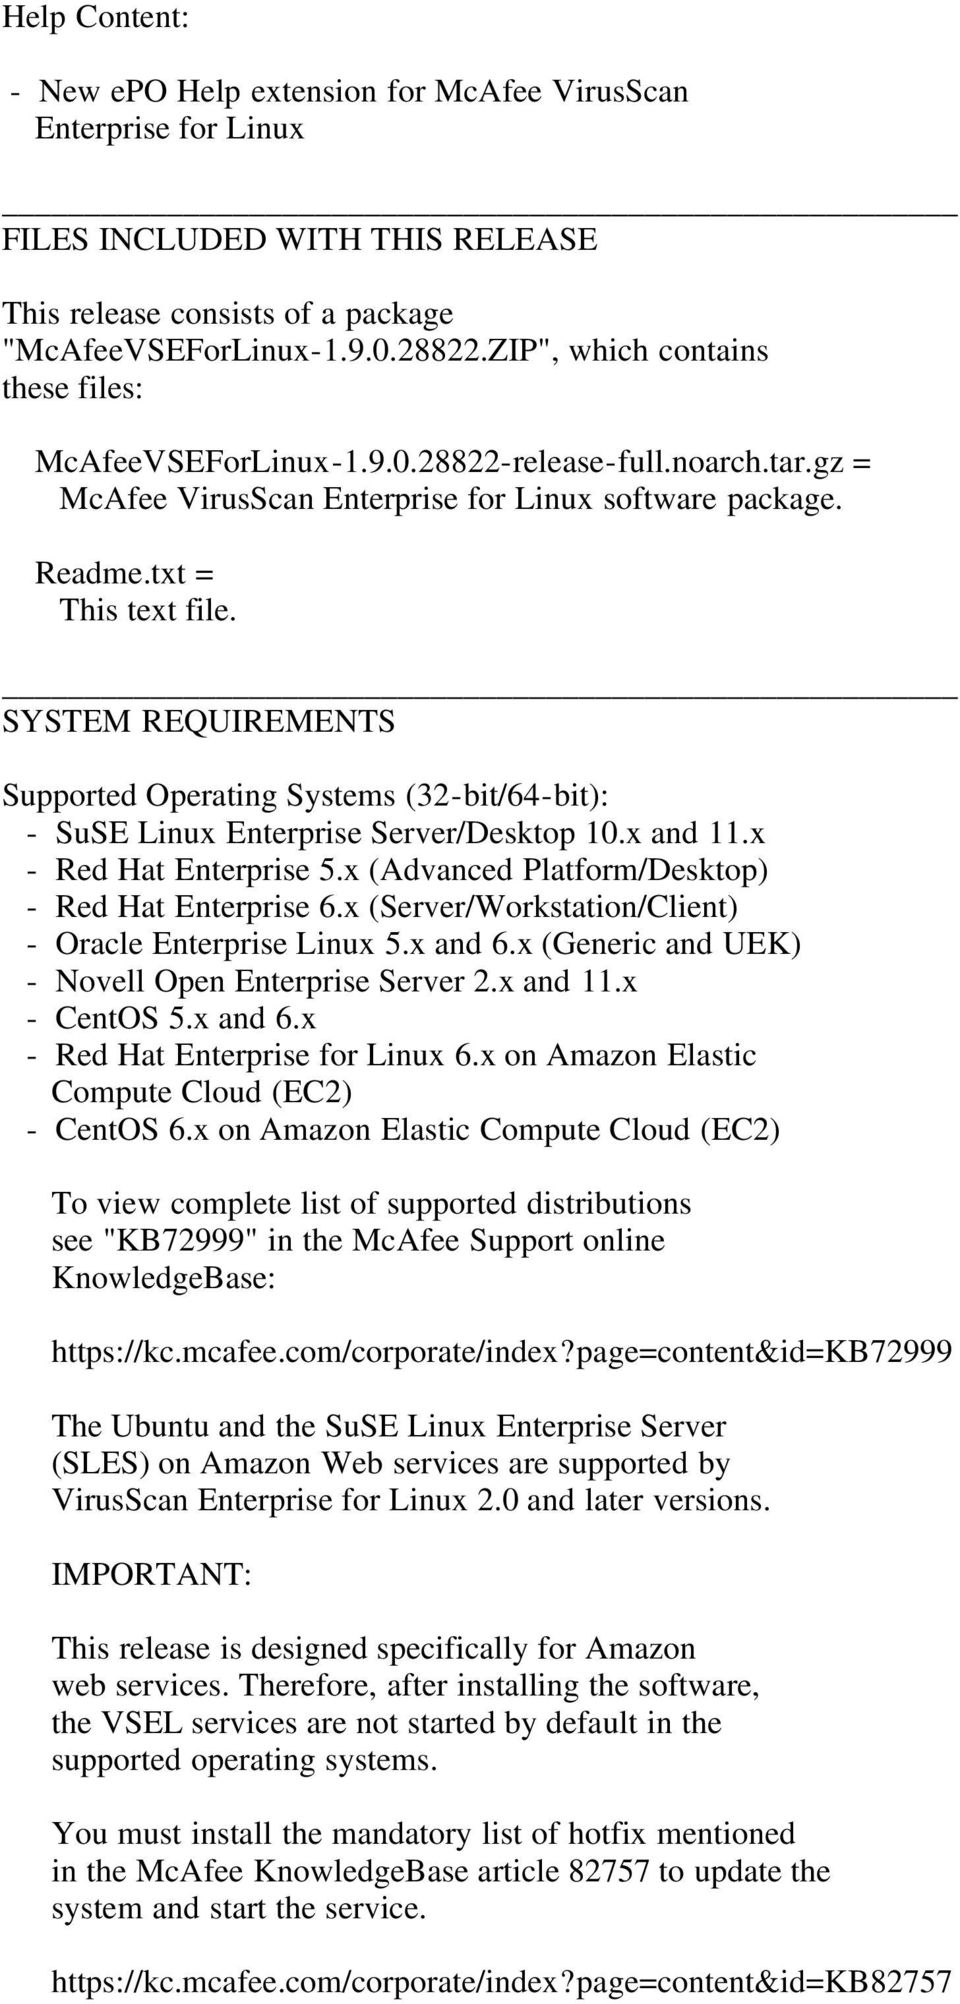 SYSTEM REQUIREMENTS Supported Operating Systems (32-bit/64-bit): - SuSE Linux Enterprise Server/Desktop 10.x and 11.x - Red Hat Enterprise 5.x (Advanced Platform/Desktop) - Red Hat Enterprise 6.